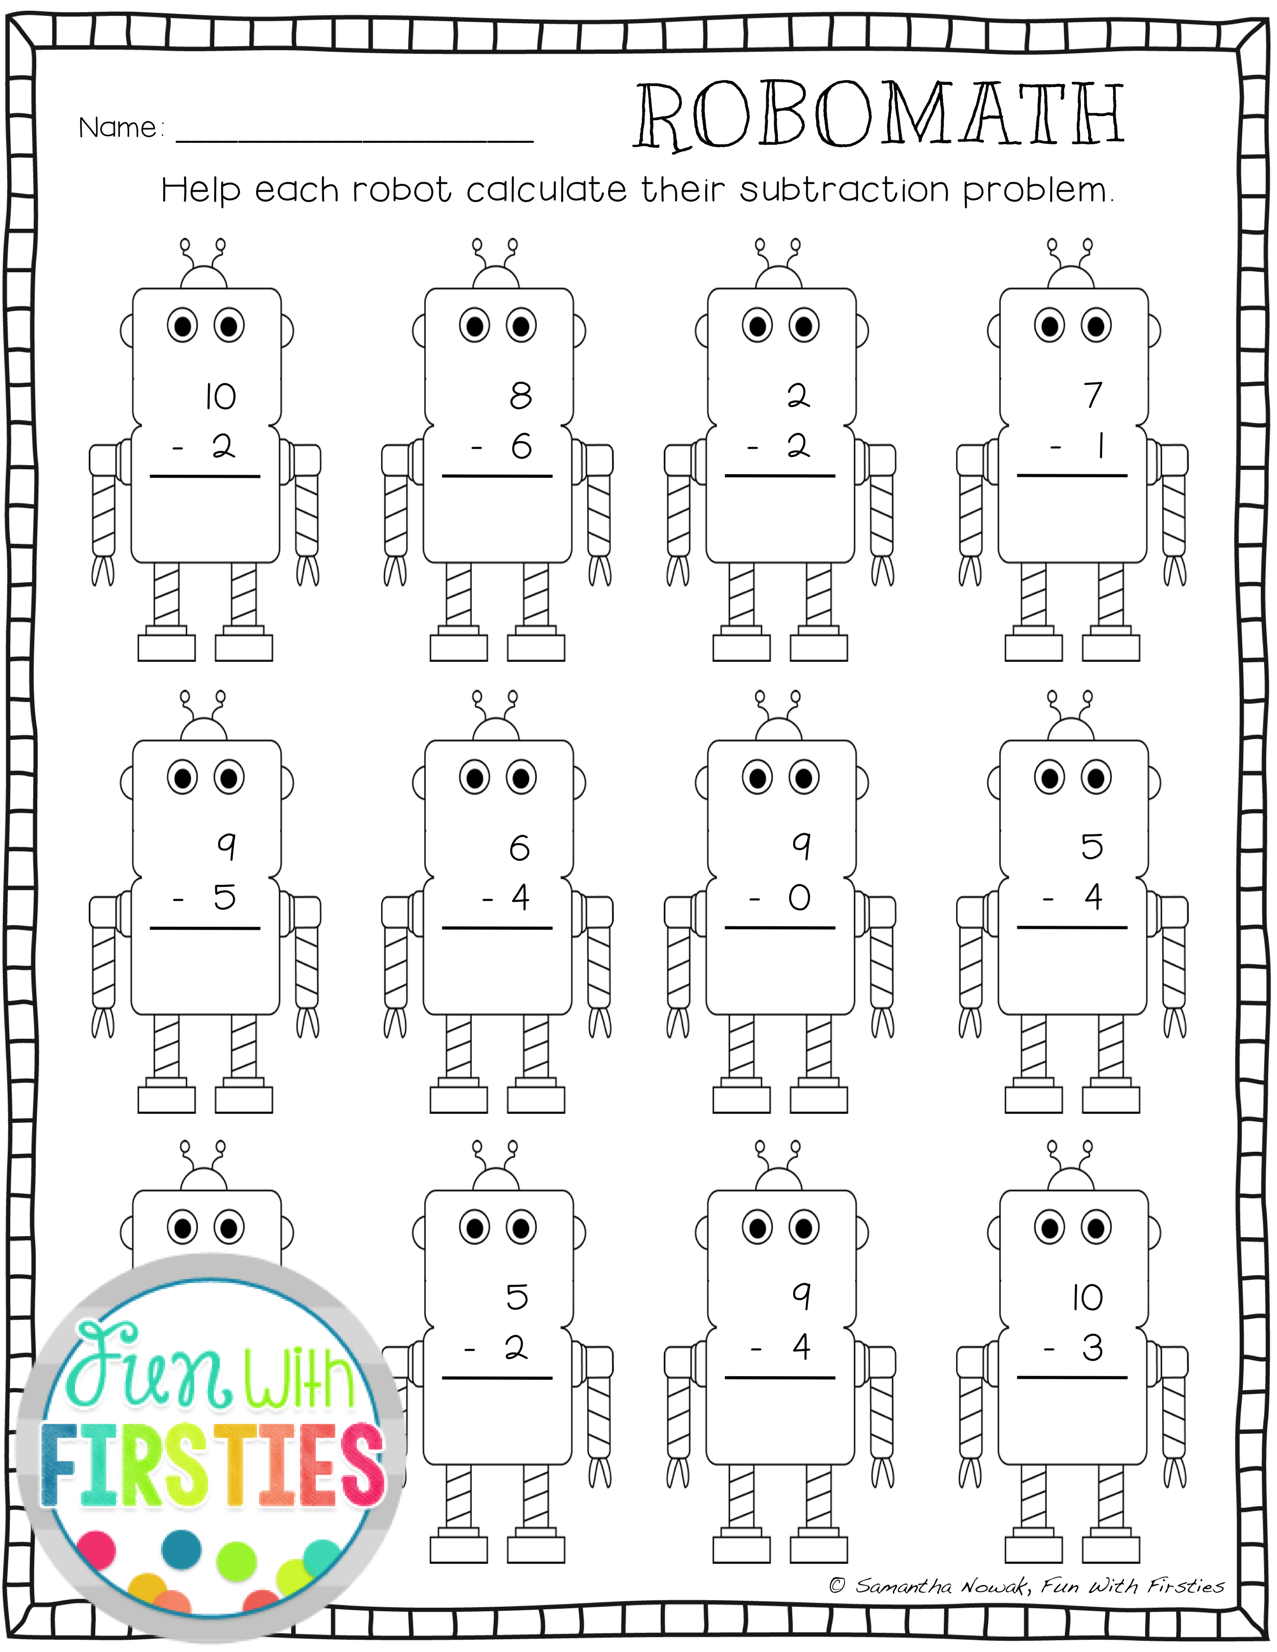 A Robot Page For Addition Subtraction Practice That My Boys Love Addition And Subtraction Practice Subtraction Practice Summer Math Worksheets [ 1652 x 1277 Pixel ]